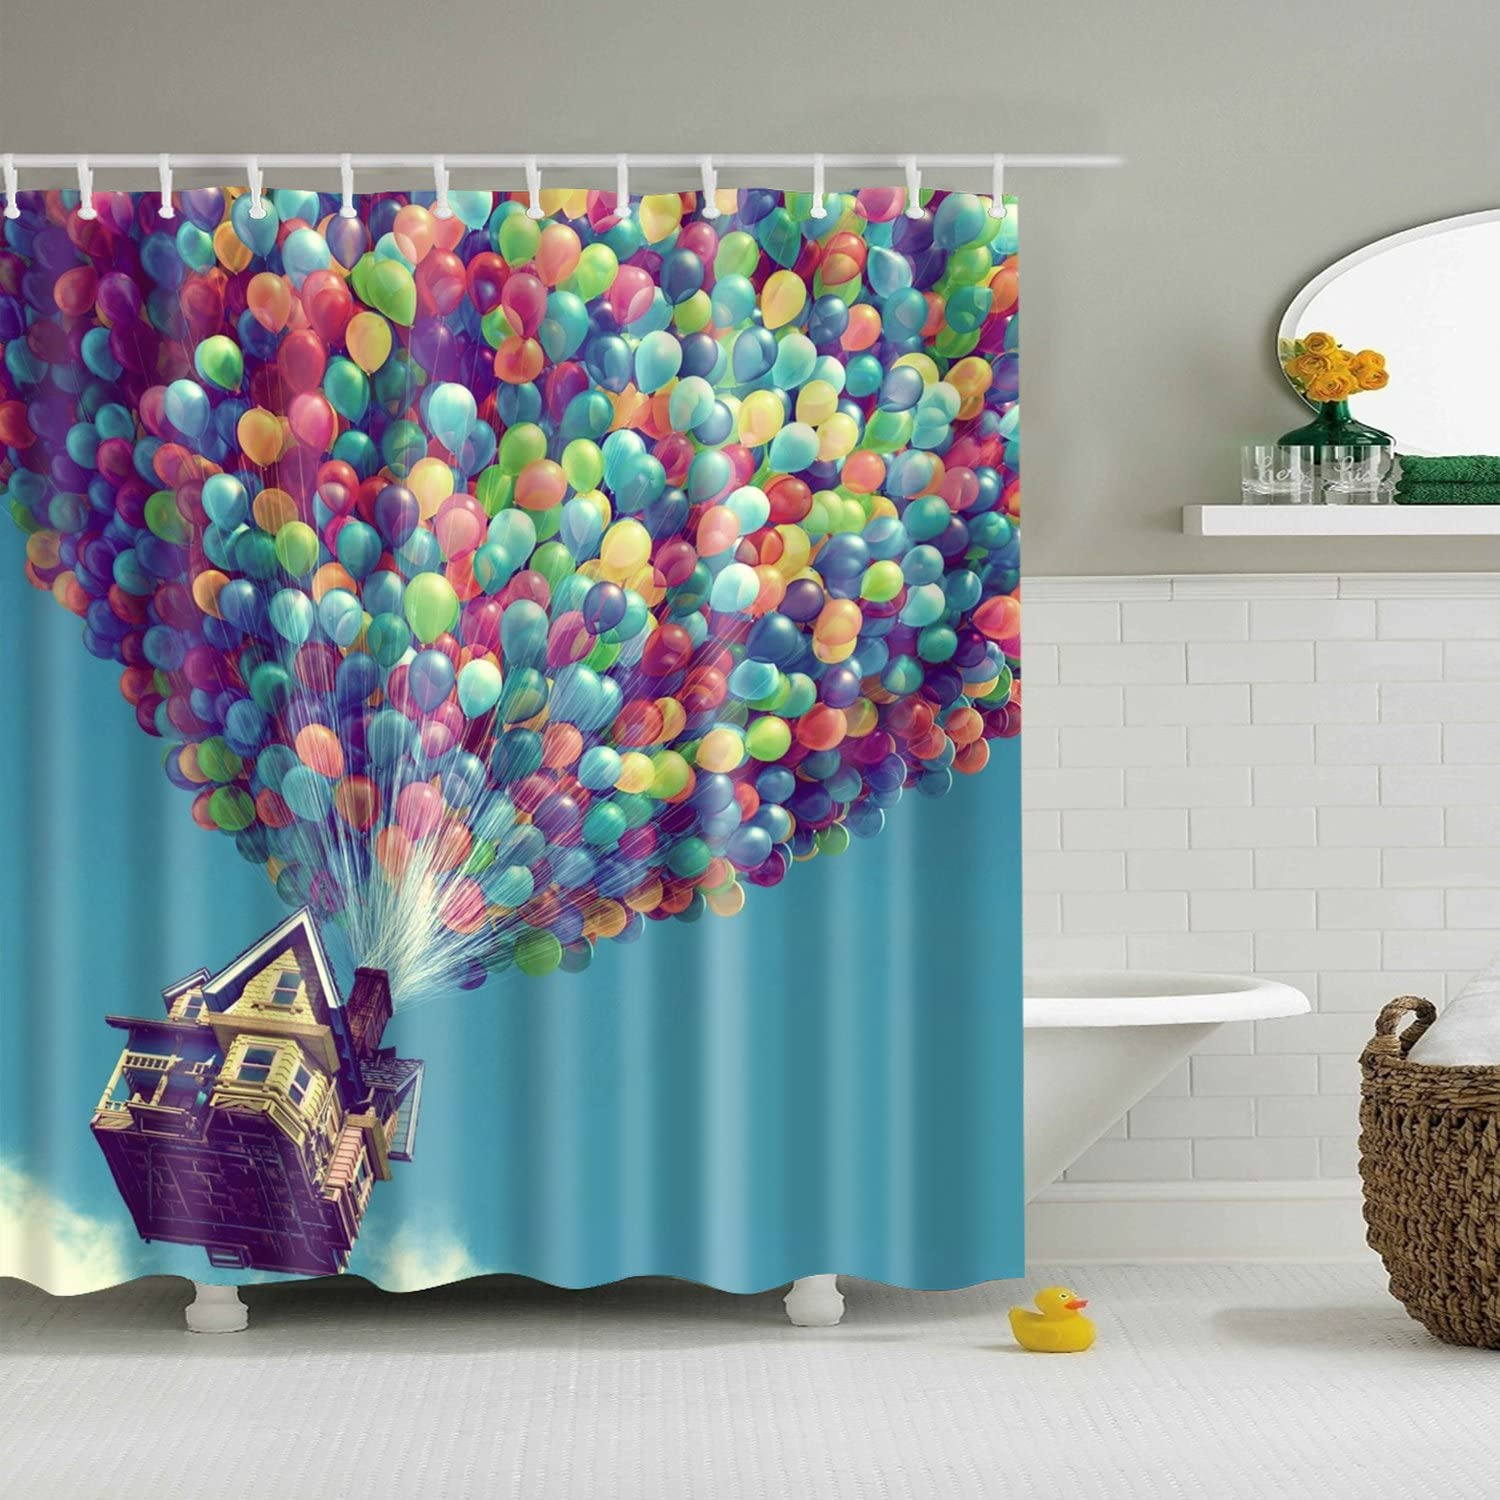 Bartori Shower Curtain A Lot of Colorful Balloon Take The House Fly in The Sky Like The Movie UP Waterproof Polyester Fabric Bath Curtain with 12pcs Hooks and Size 71''X71'' Nice Decorative